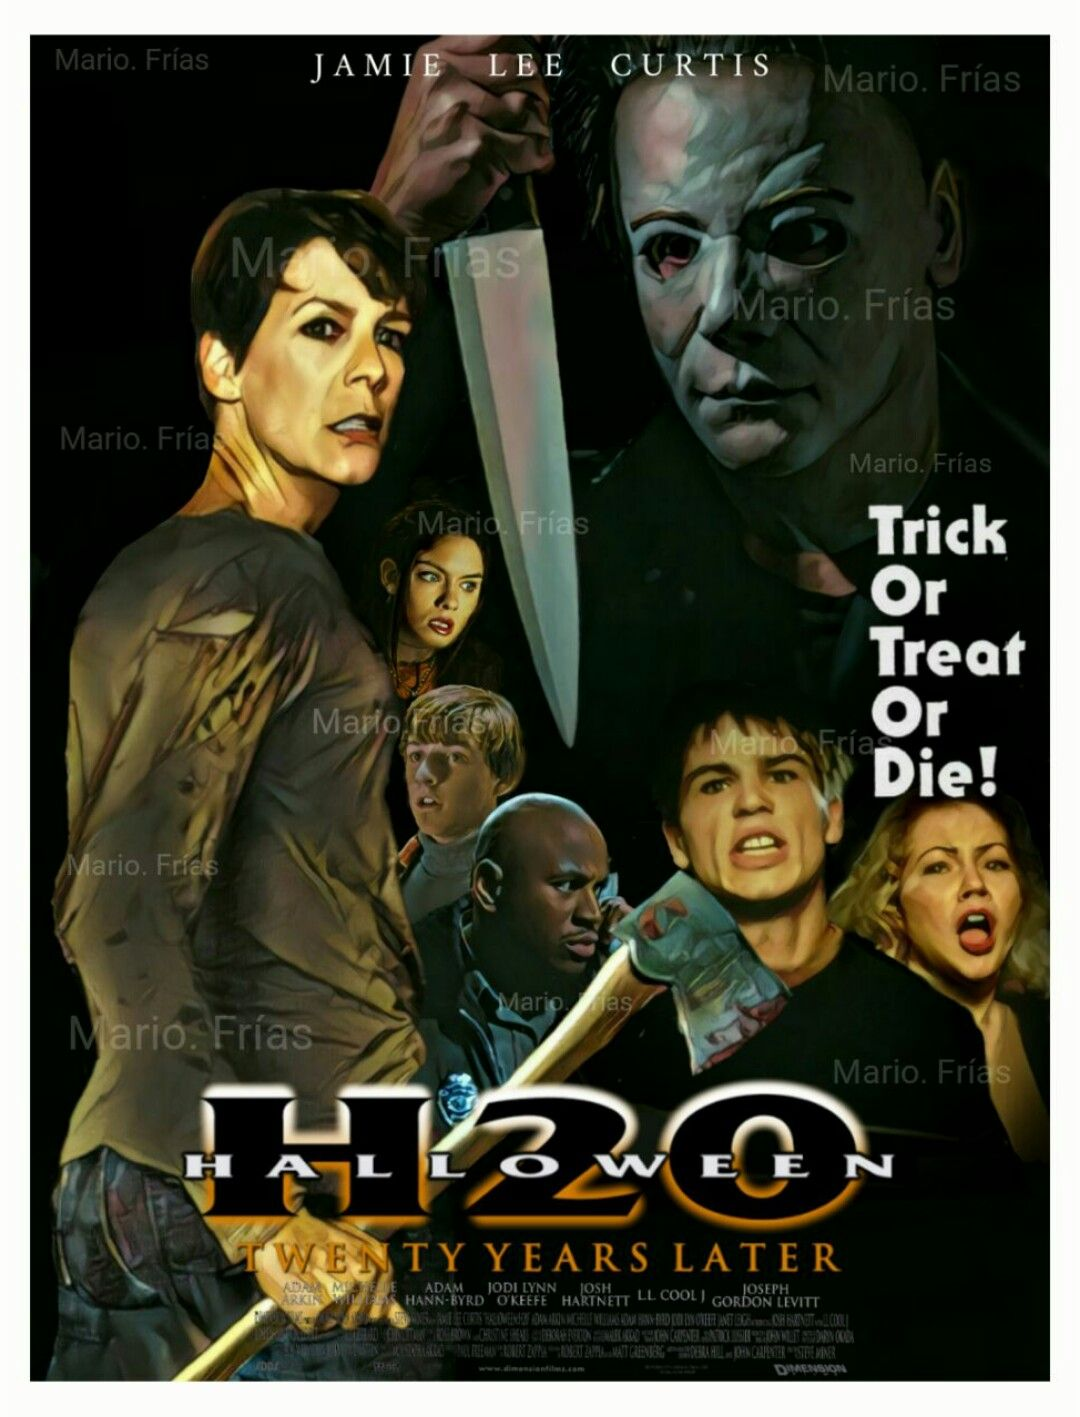 Halloween H20 Full Picture Online Free | Halloween H20 Horror Movie Slasher Edit By Mario Frias Horror Fan